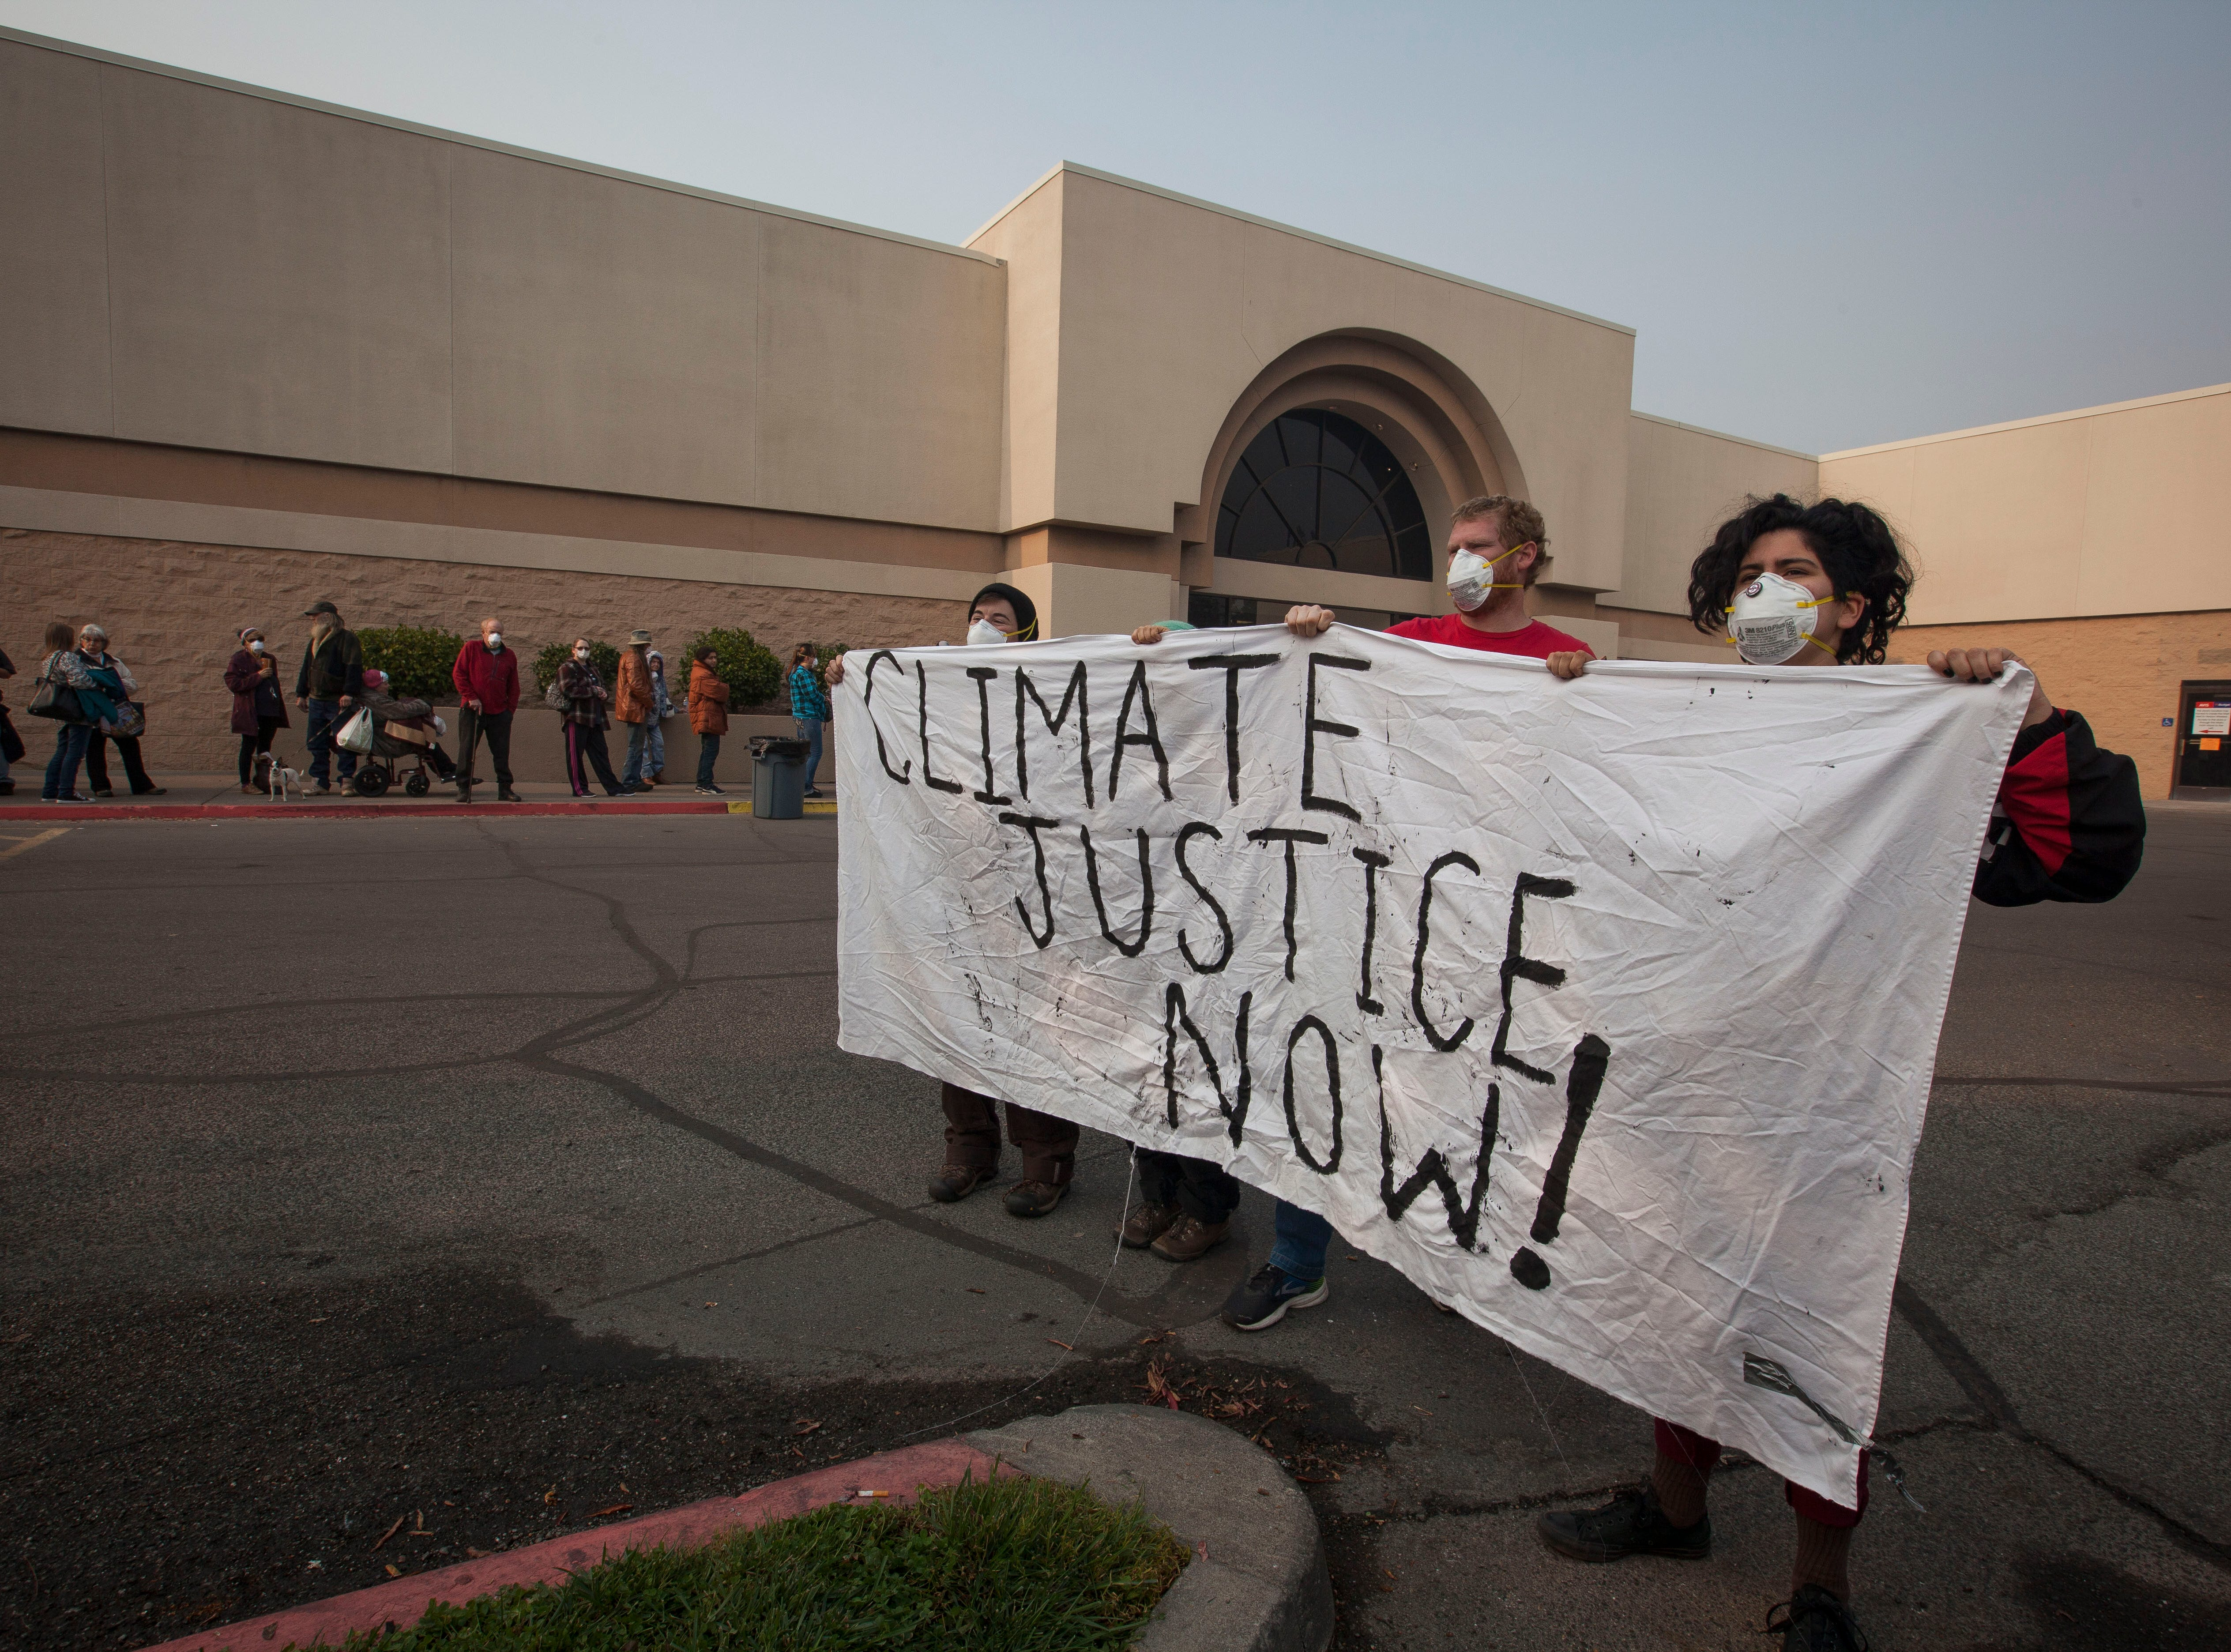 A group of activists hold a sign about climate change as people wait in a long line to get into the former Sears store in the Chico Mall, Saturday, Nov. 17, 2018. The empty store now houses FEMA and a host of other local, state and government agencies to help those affected by the Camp Fire.